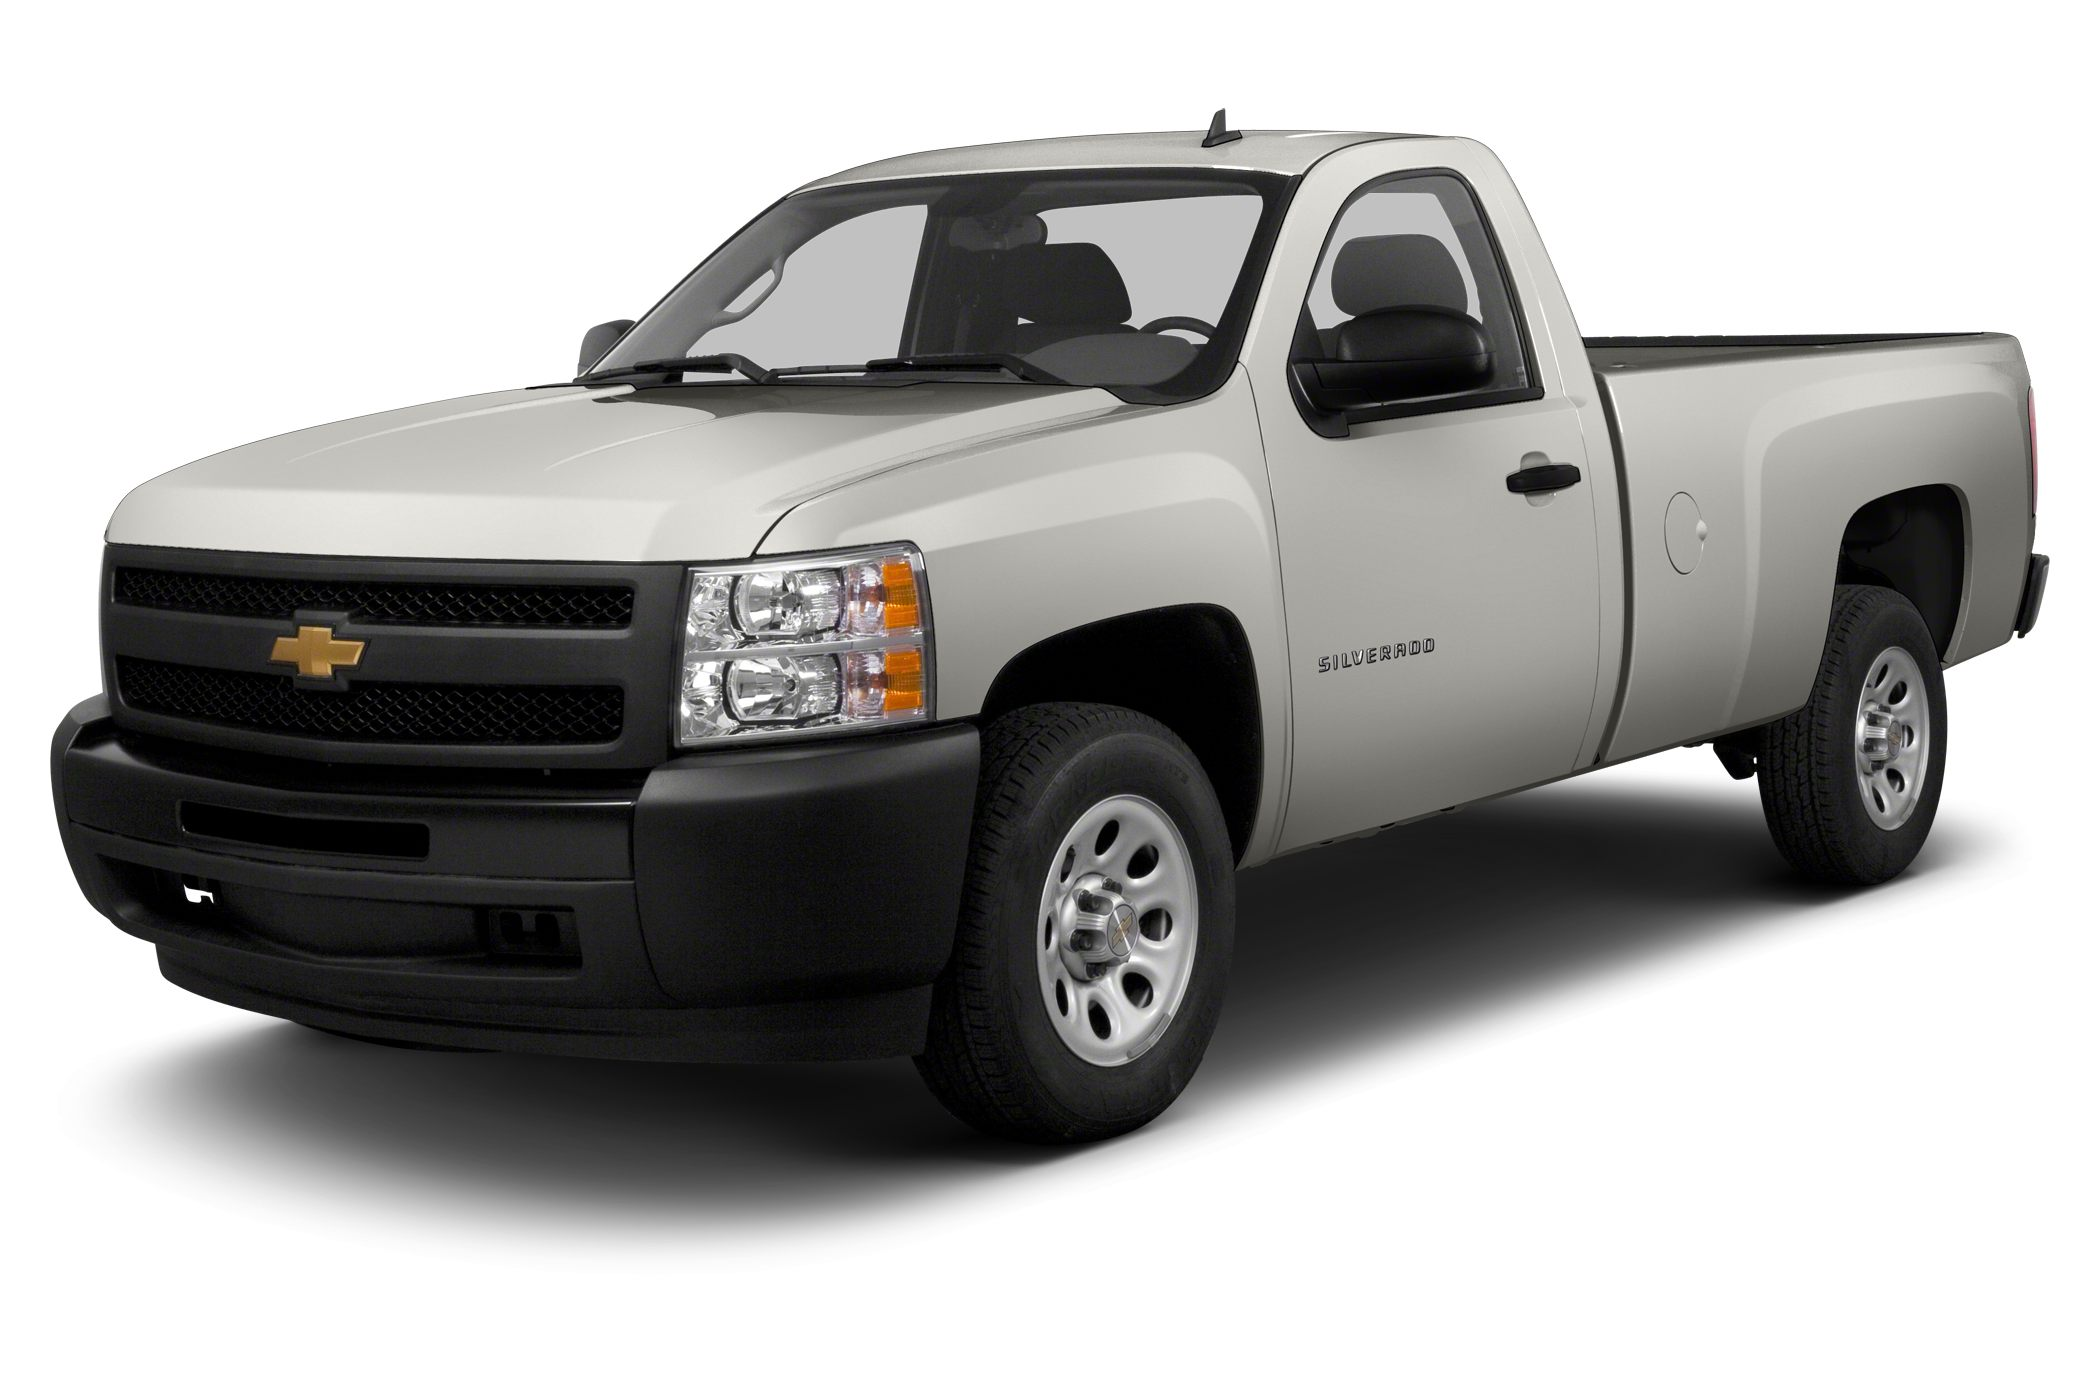 2013 Chevrolet Silverado 1500 LT Extended Cab Pickup for sale in Waynesboro for $0 with 11,940 miles